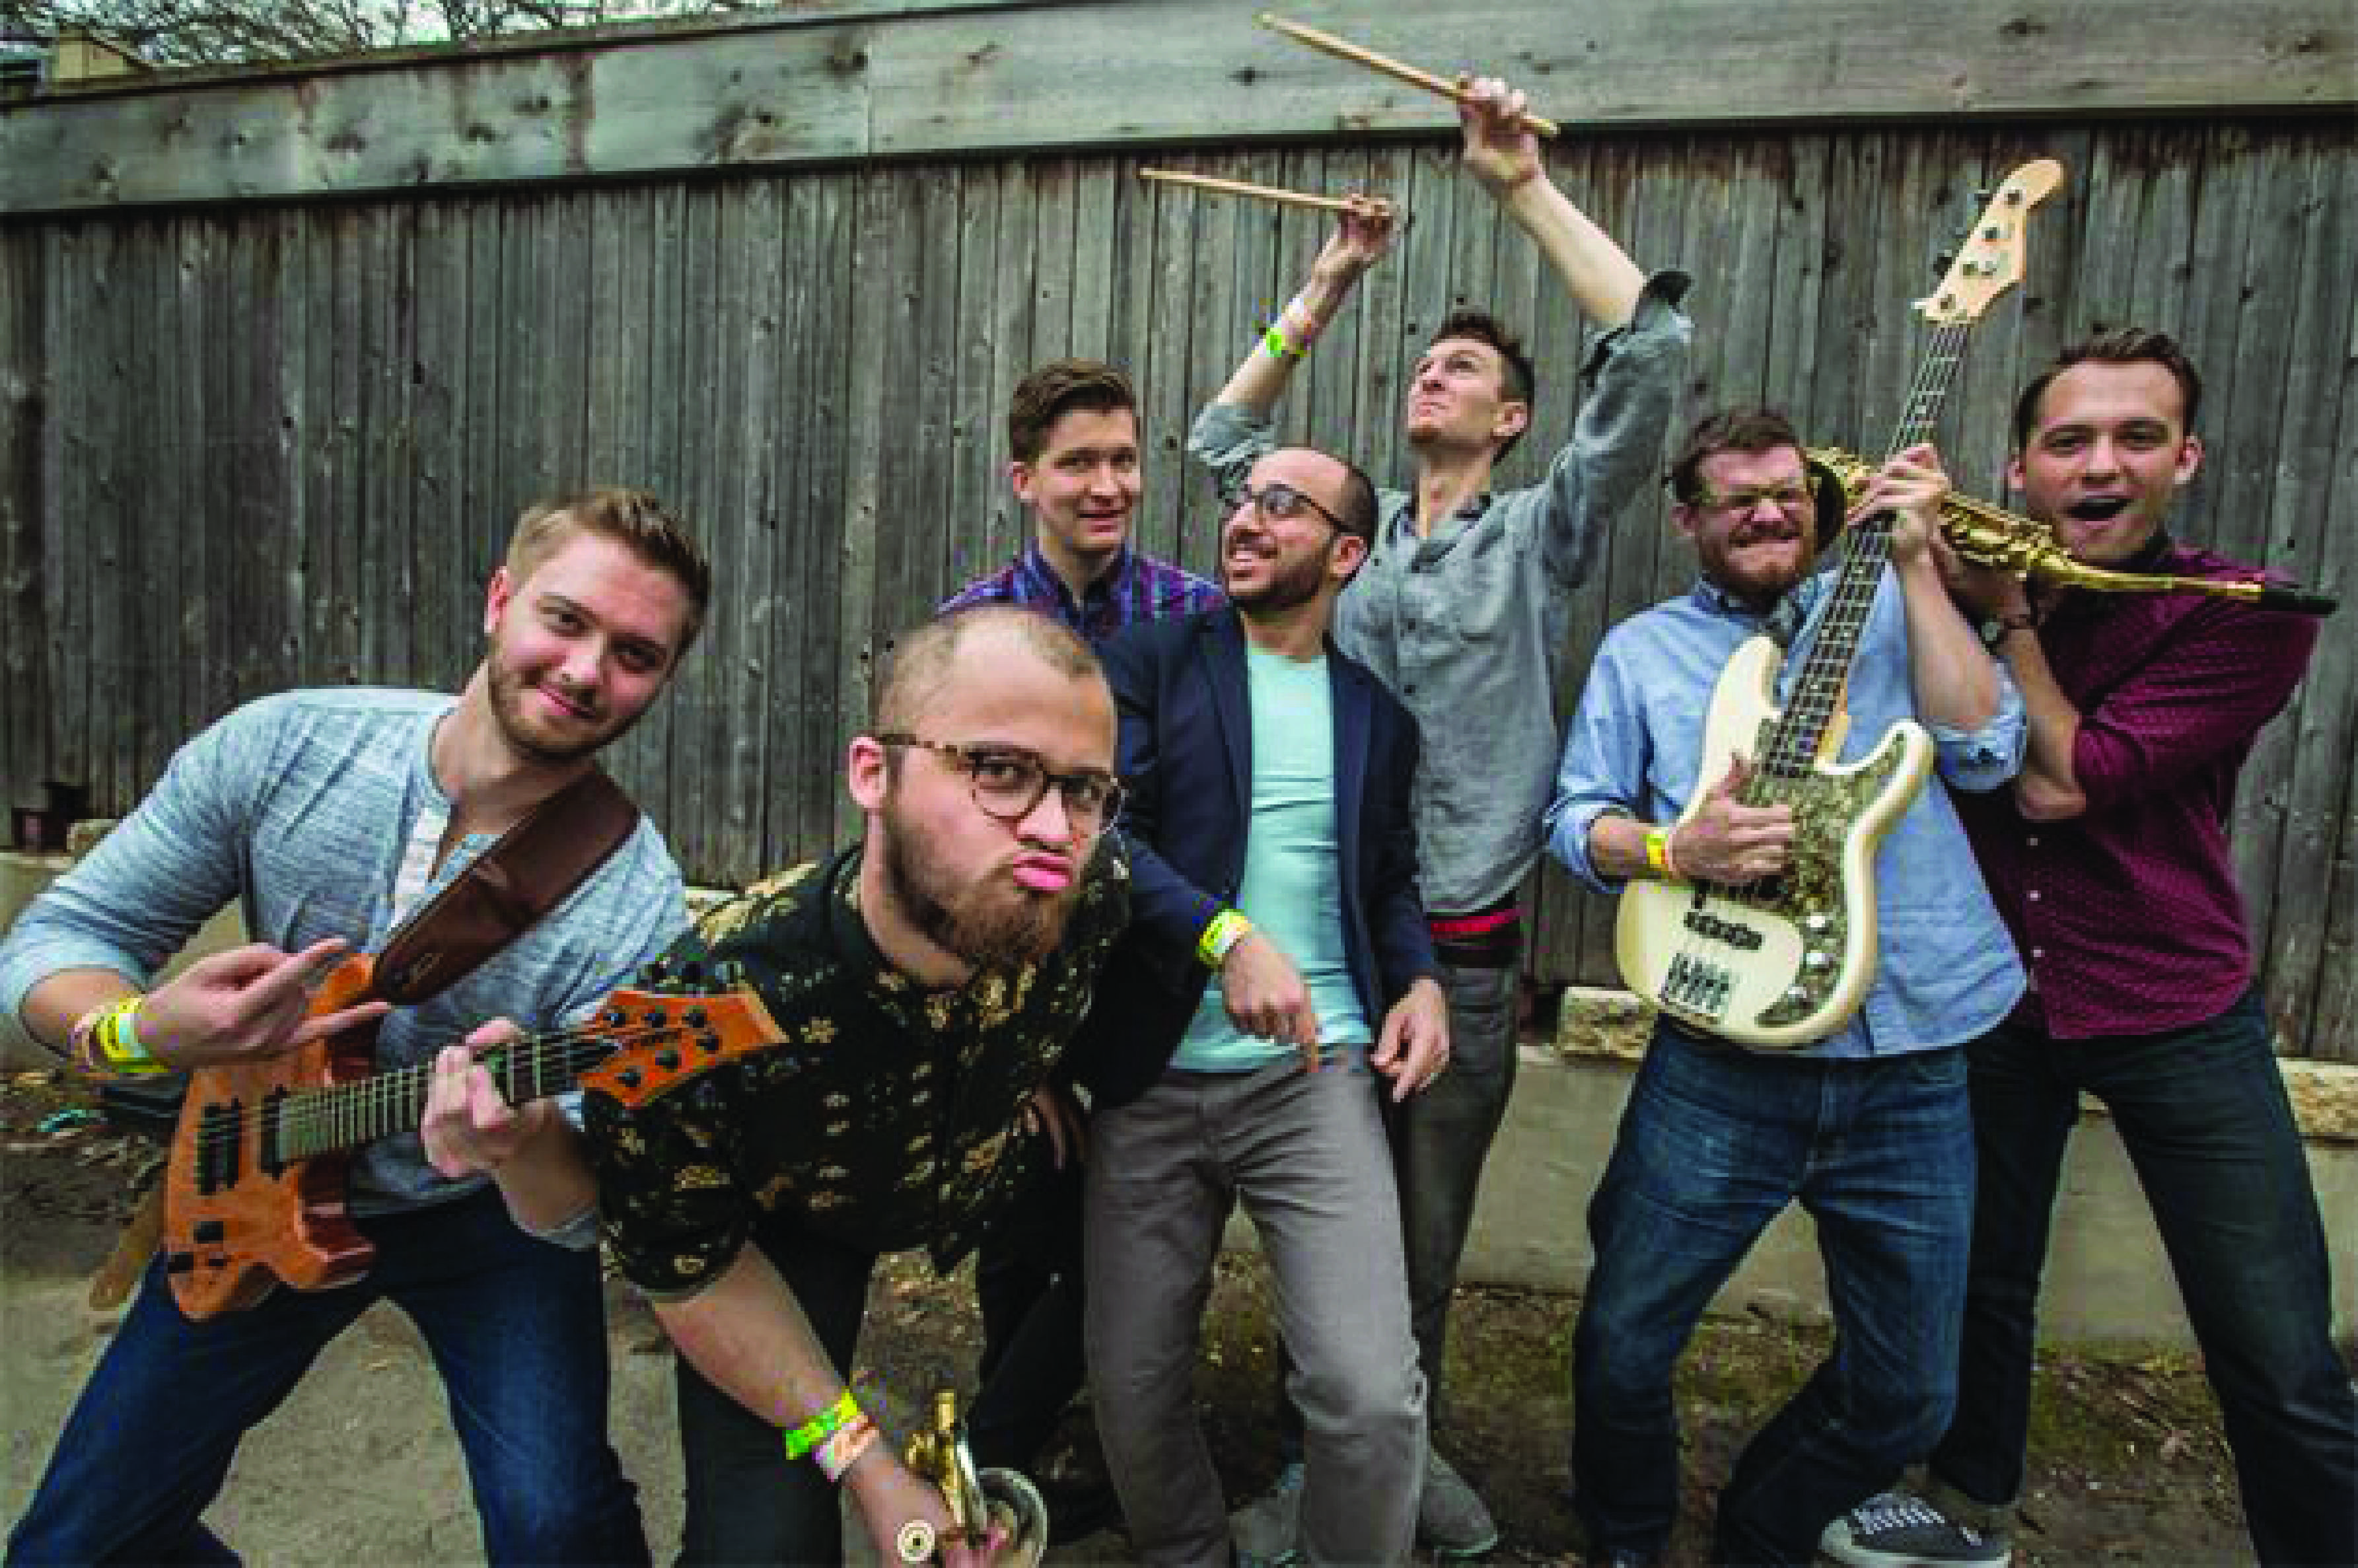 Chicago band Bassel and The Supernaturals. The group is performing at Boone Saloon on Nov. 17.